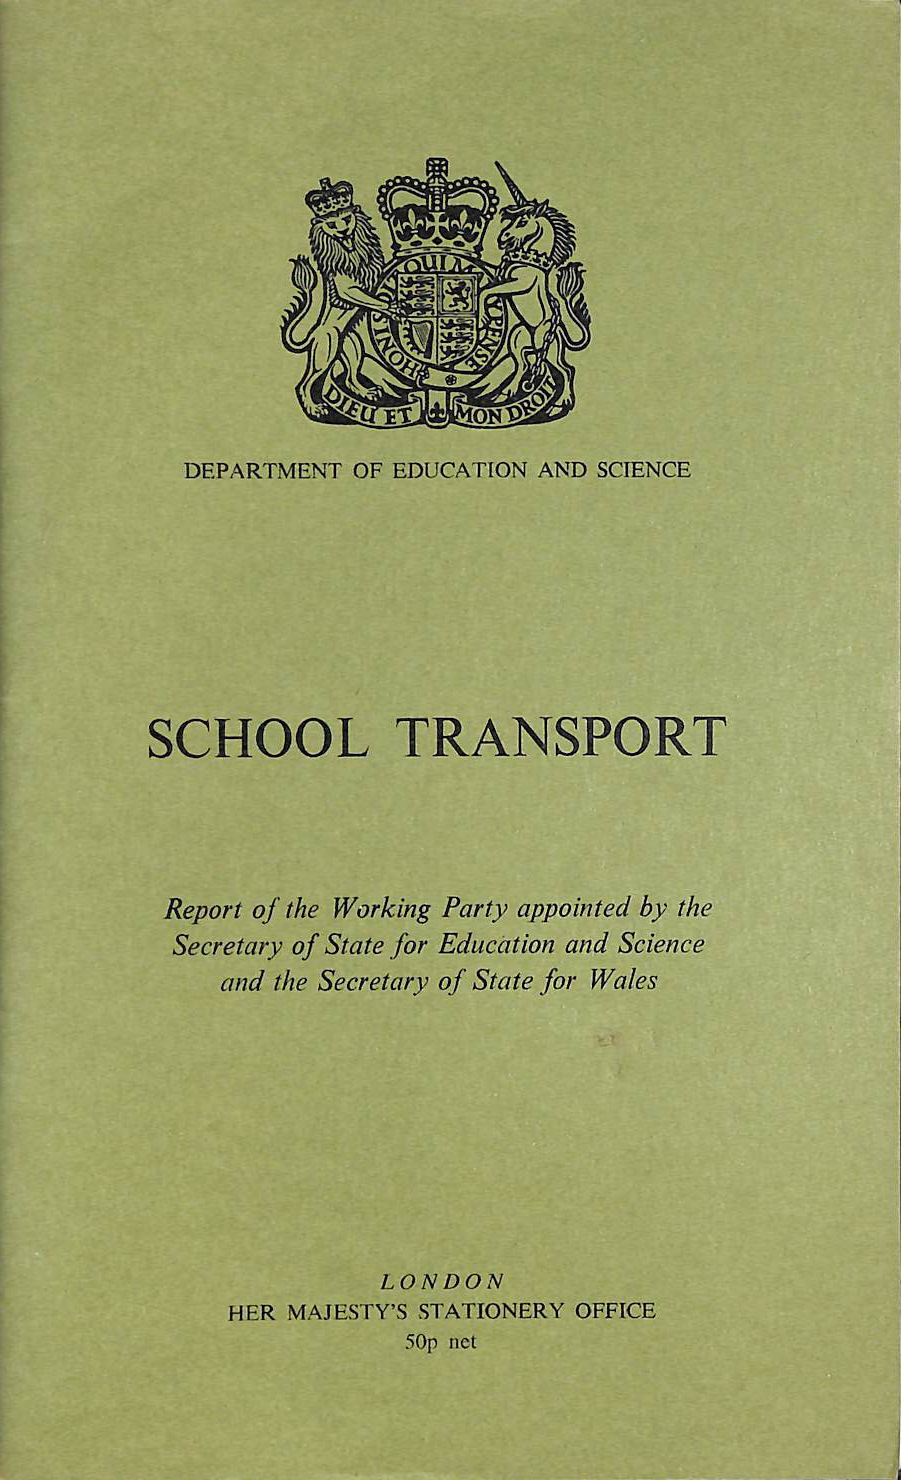 Image for School transport: Report of the Working Party appointed by the Secretary of State for Education and Science and the Secretary of State for Wales